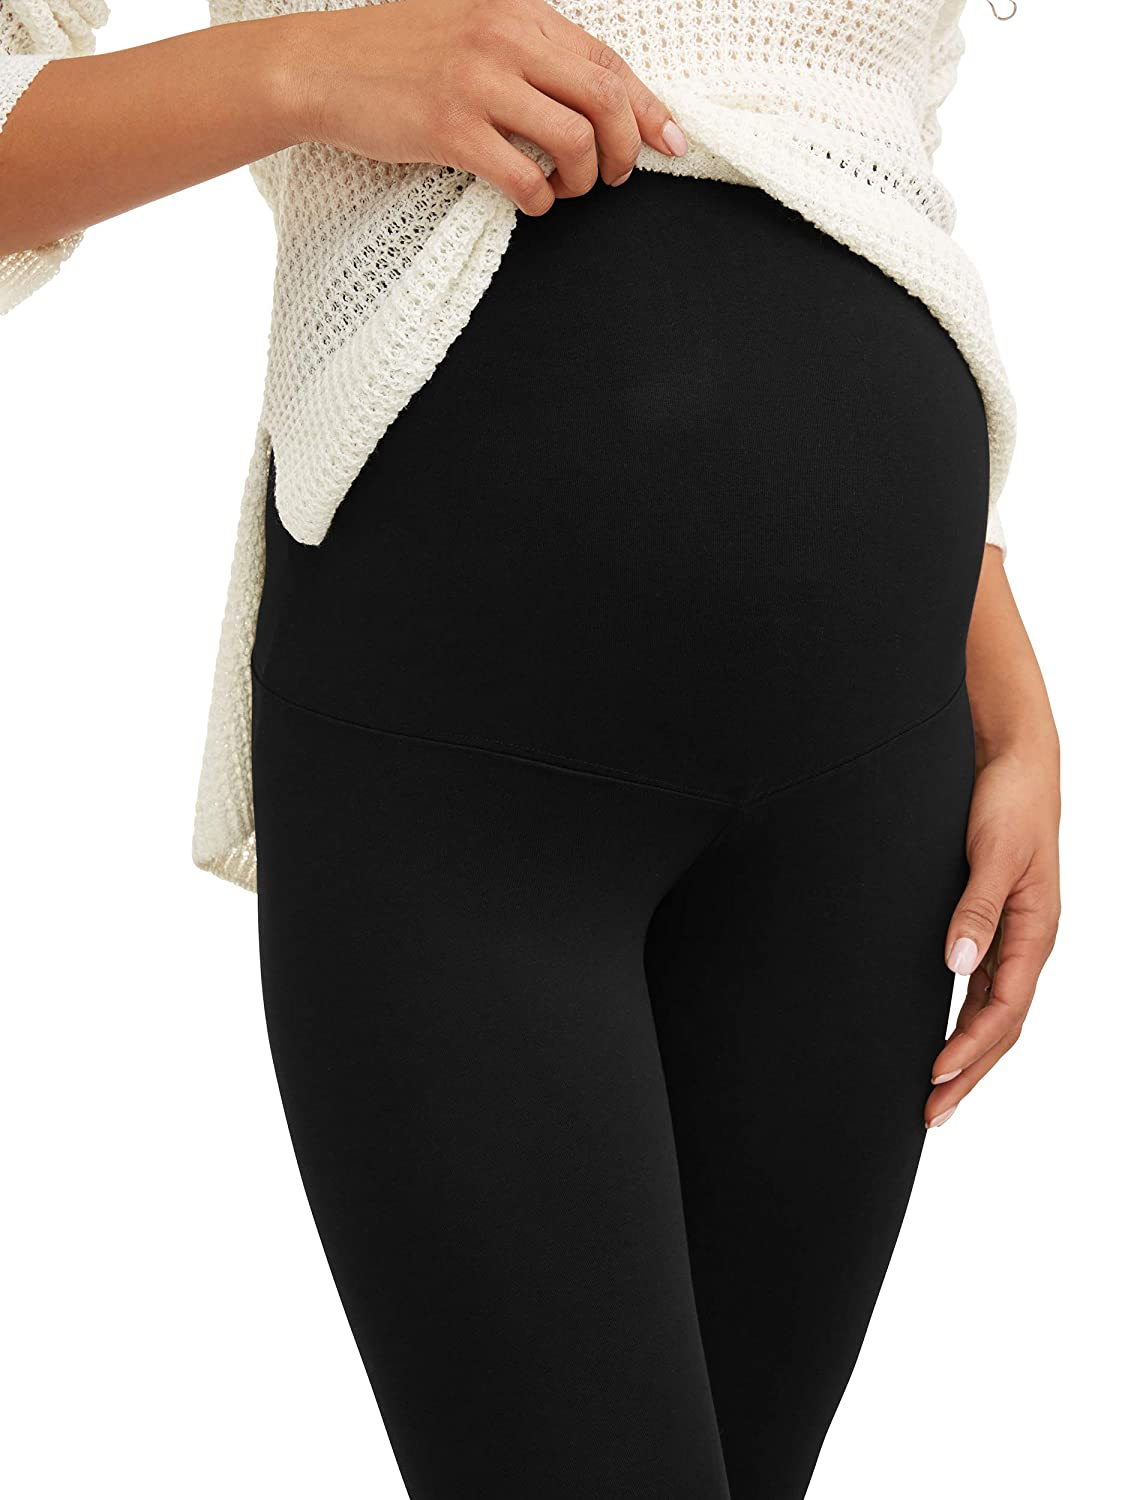 e3b8138a1ebd4 RUMOR HAS IT Maternity Over The Belly Capri Crop Support Leggings at Amazon  Women's Clothing store: